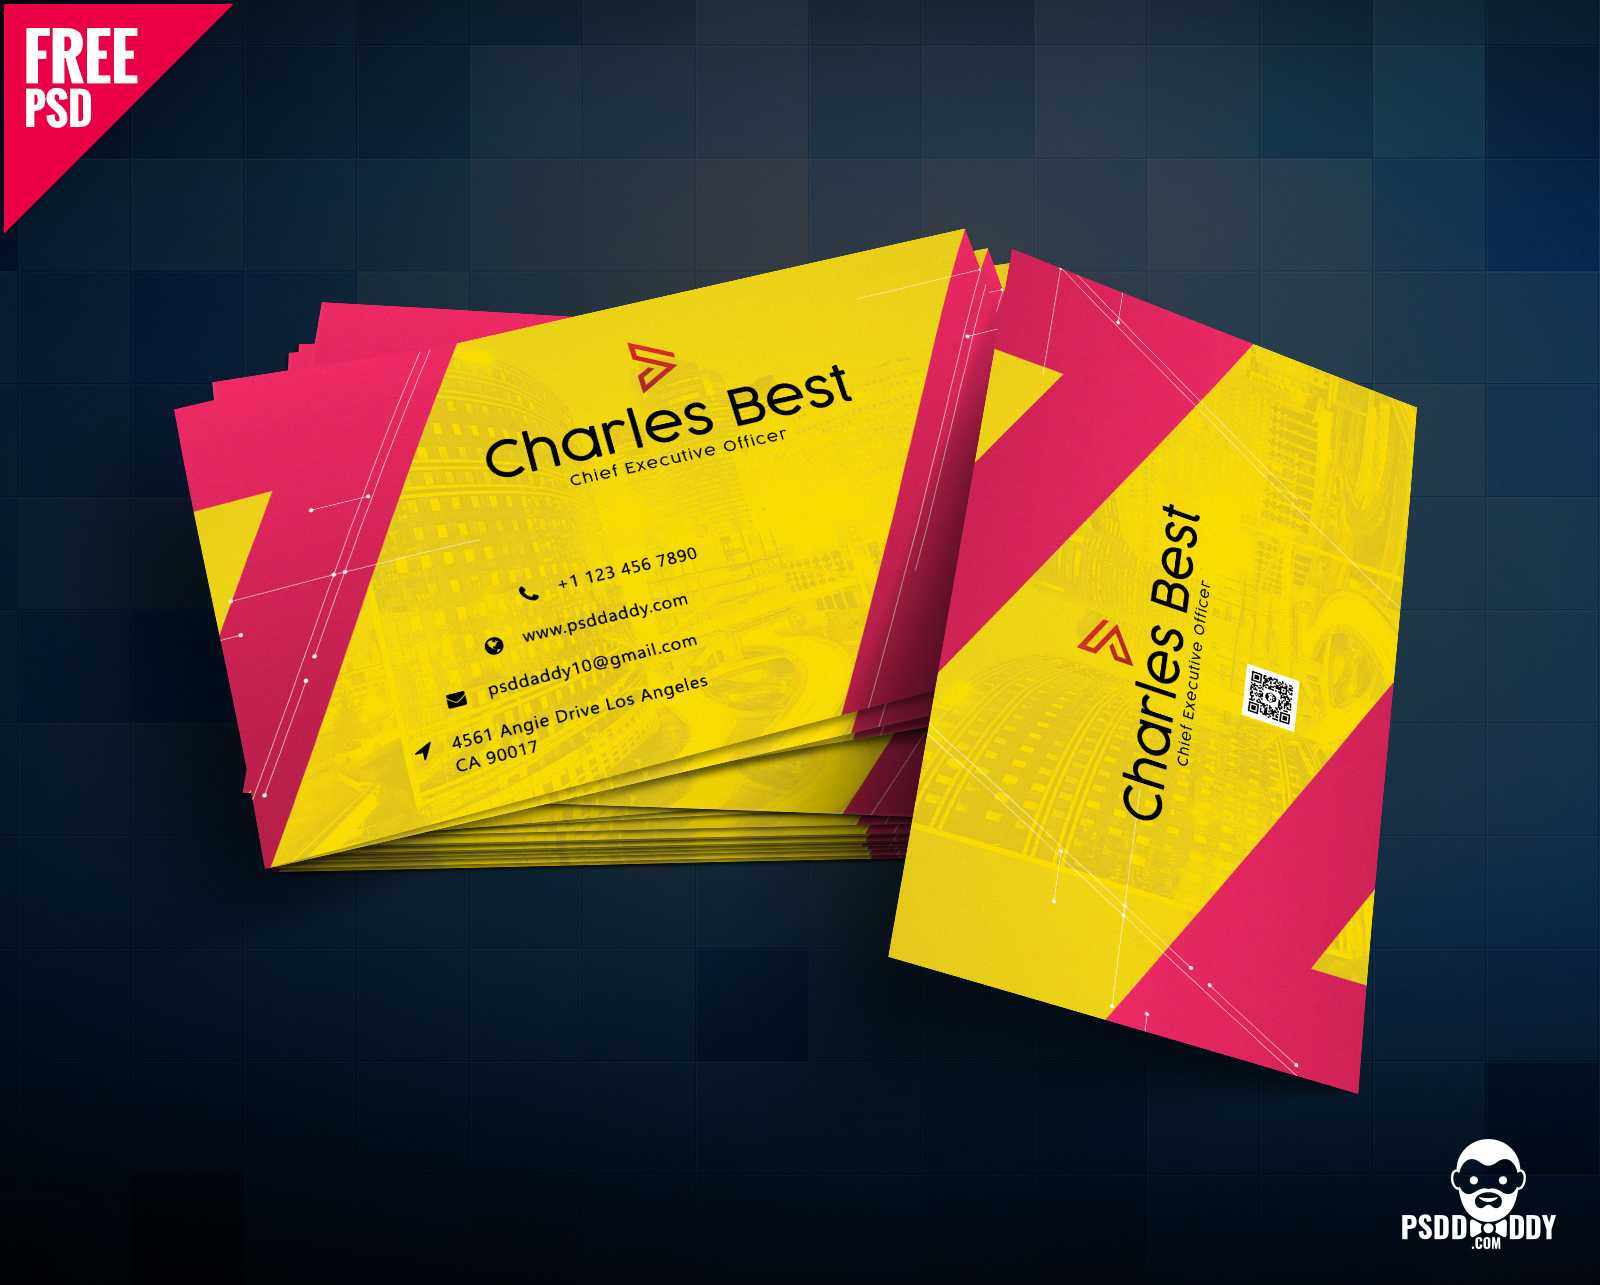 Download] Creative Business Card Free Psd | Psddaddy Throughout Business Card Size Template Psd